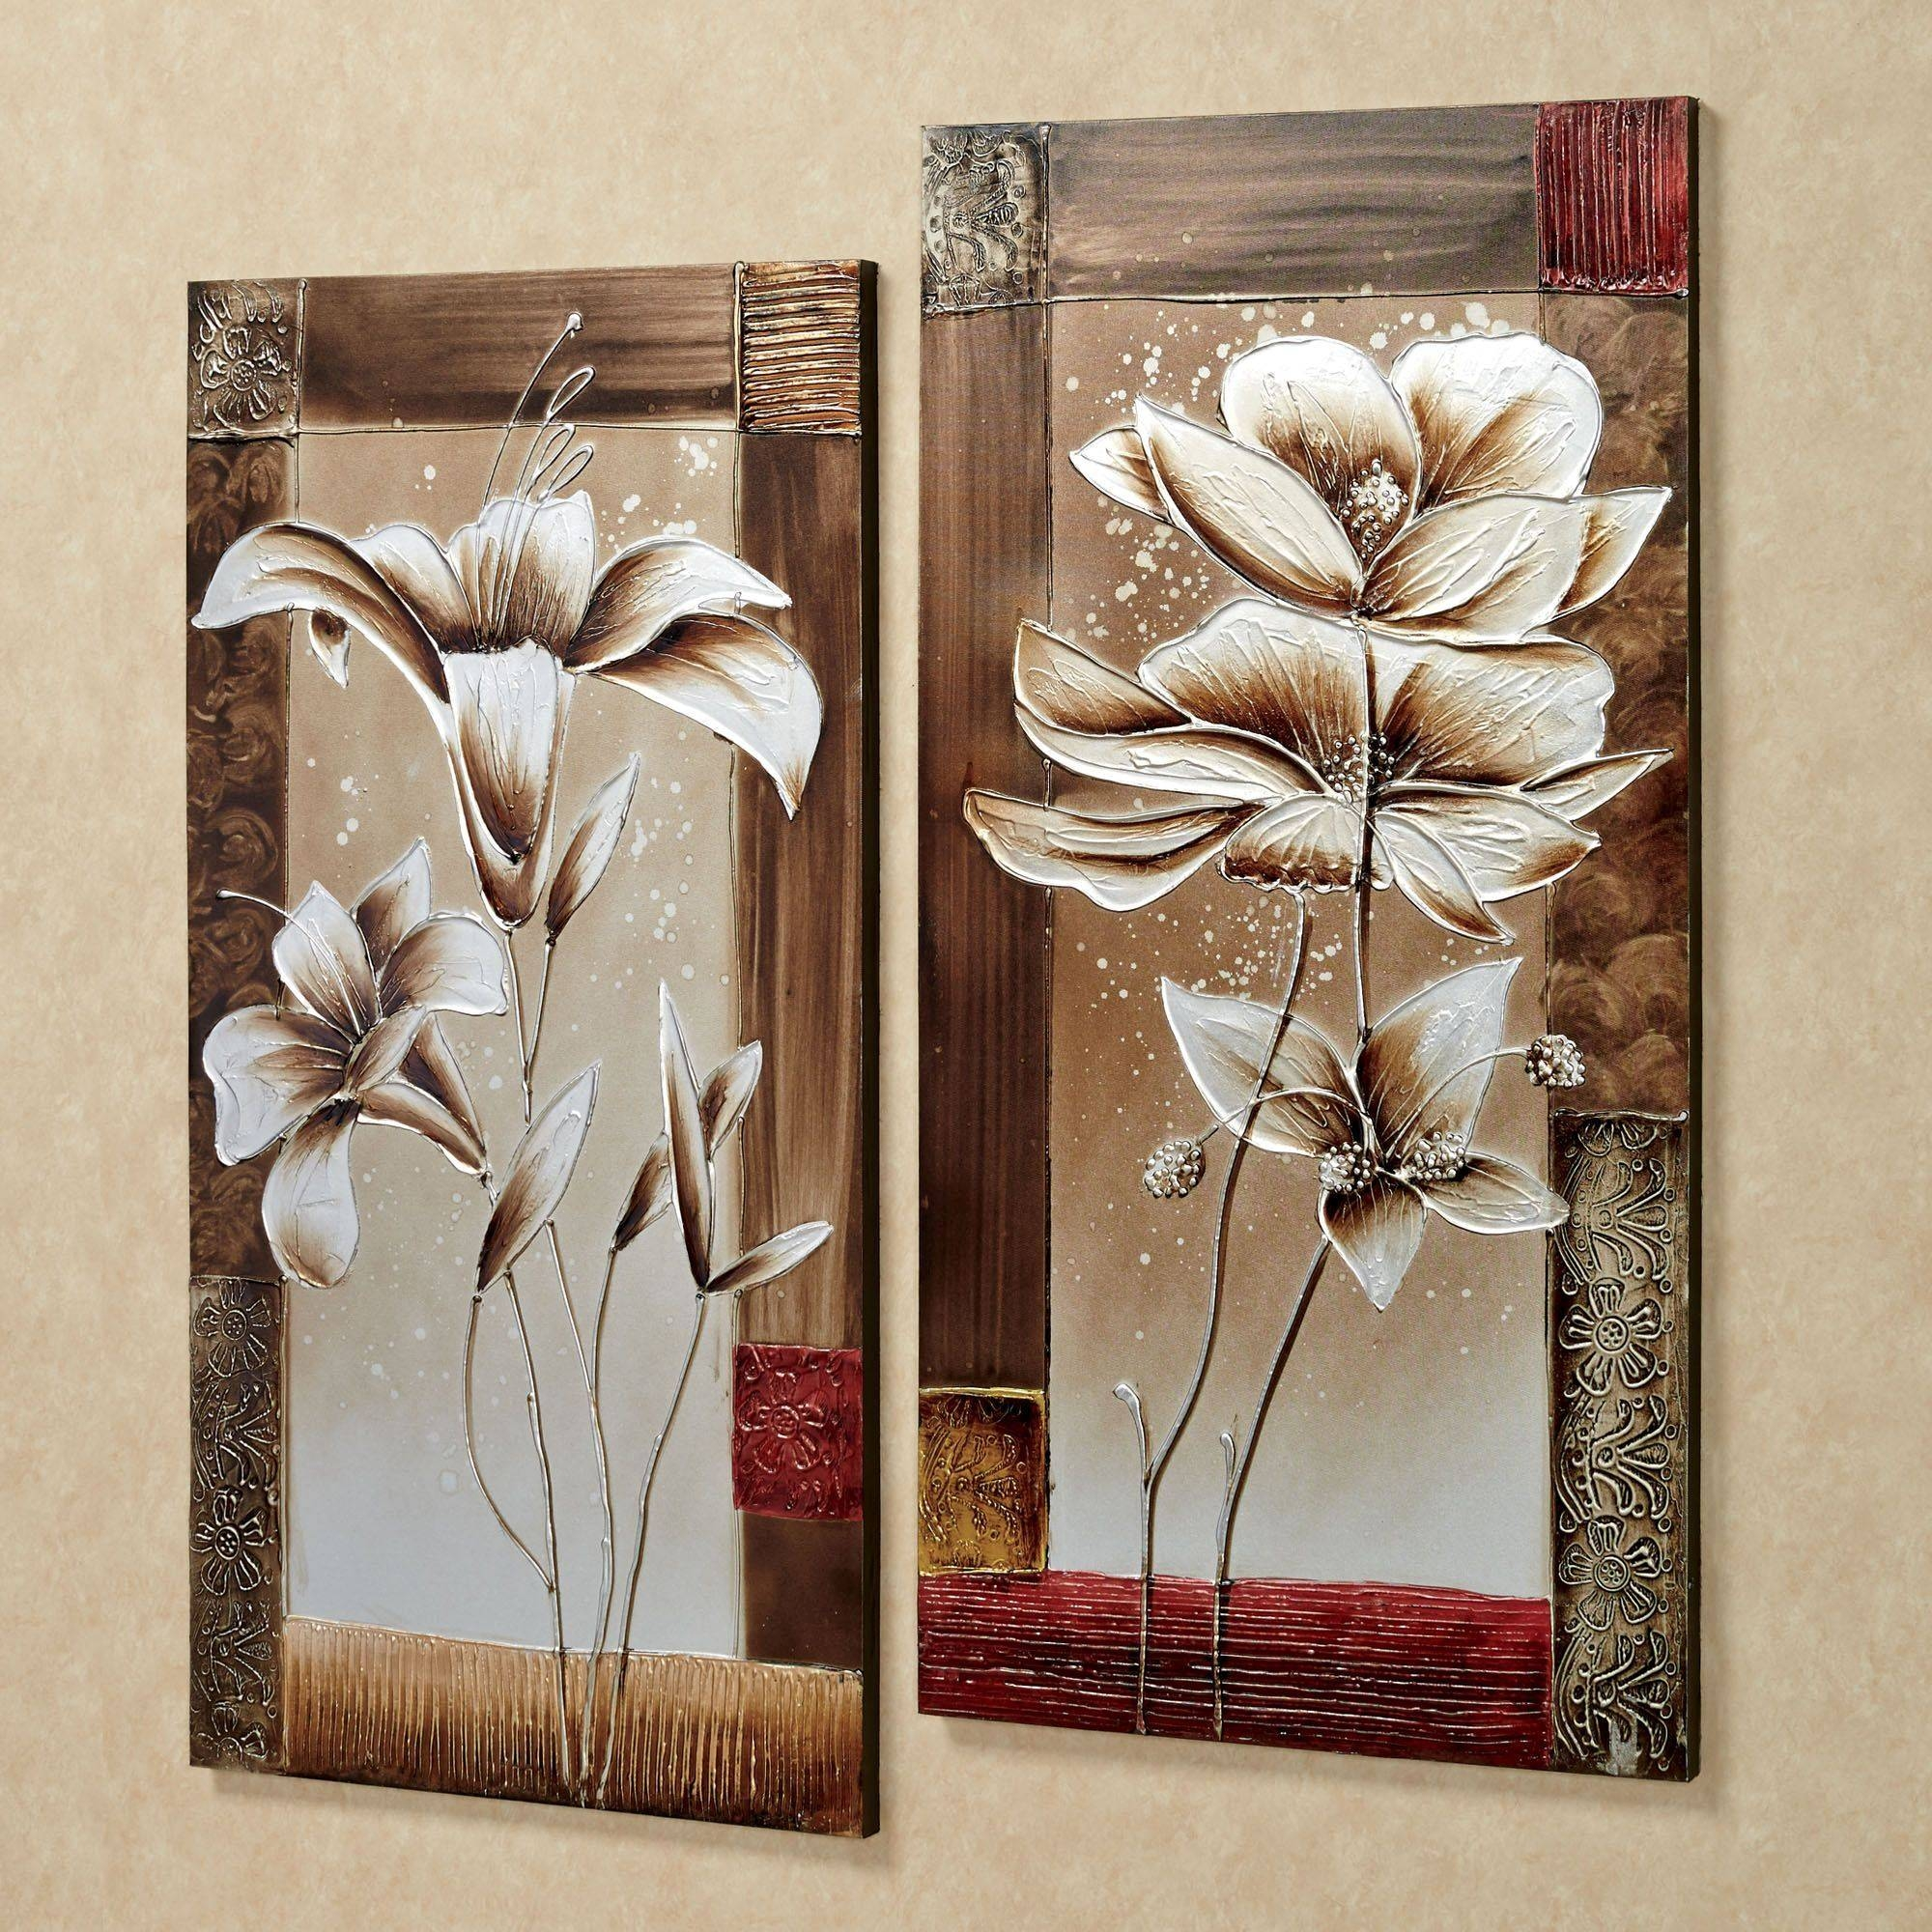 Decor: Petals Of Spring Floral Canvas Wall Art Set Pertaining To Latest 3 Pc Canvas Wall Art Sets (View 11 of 20)